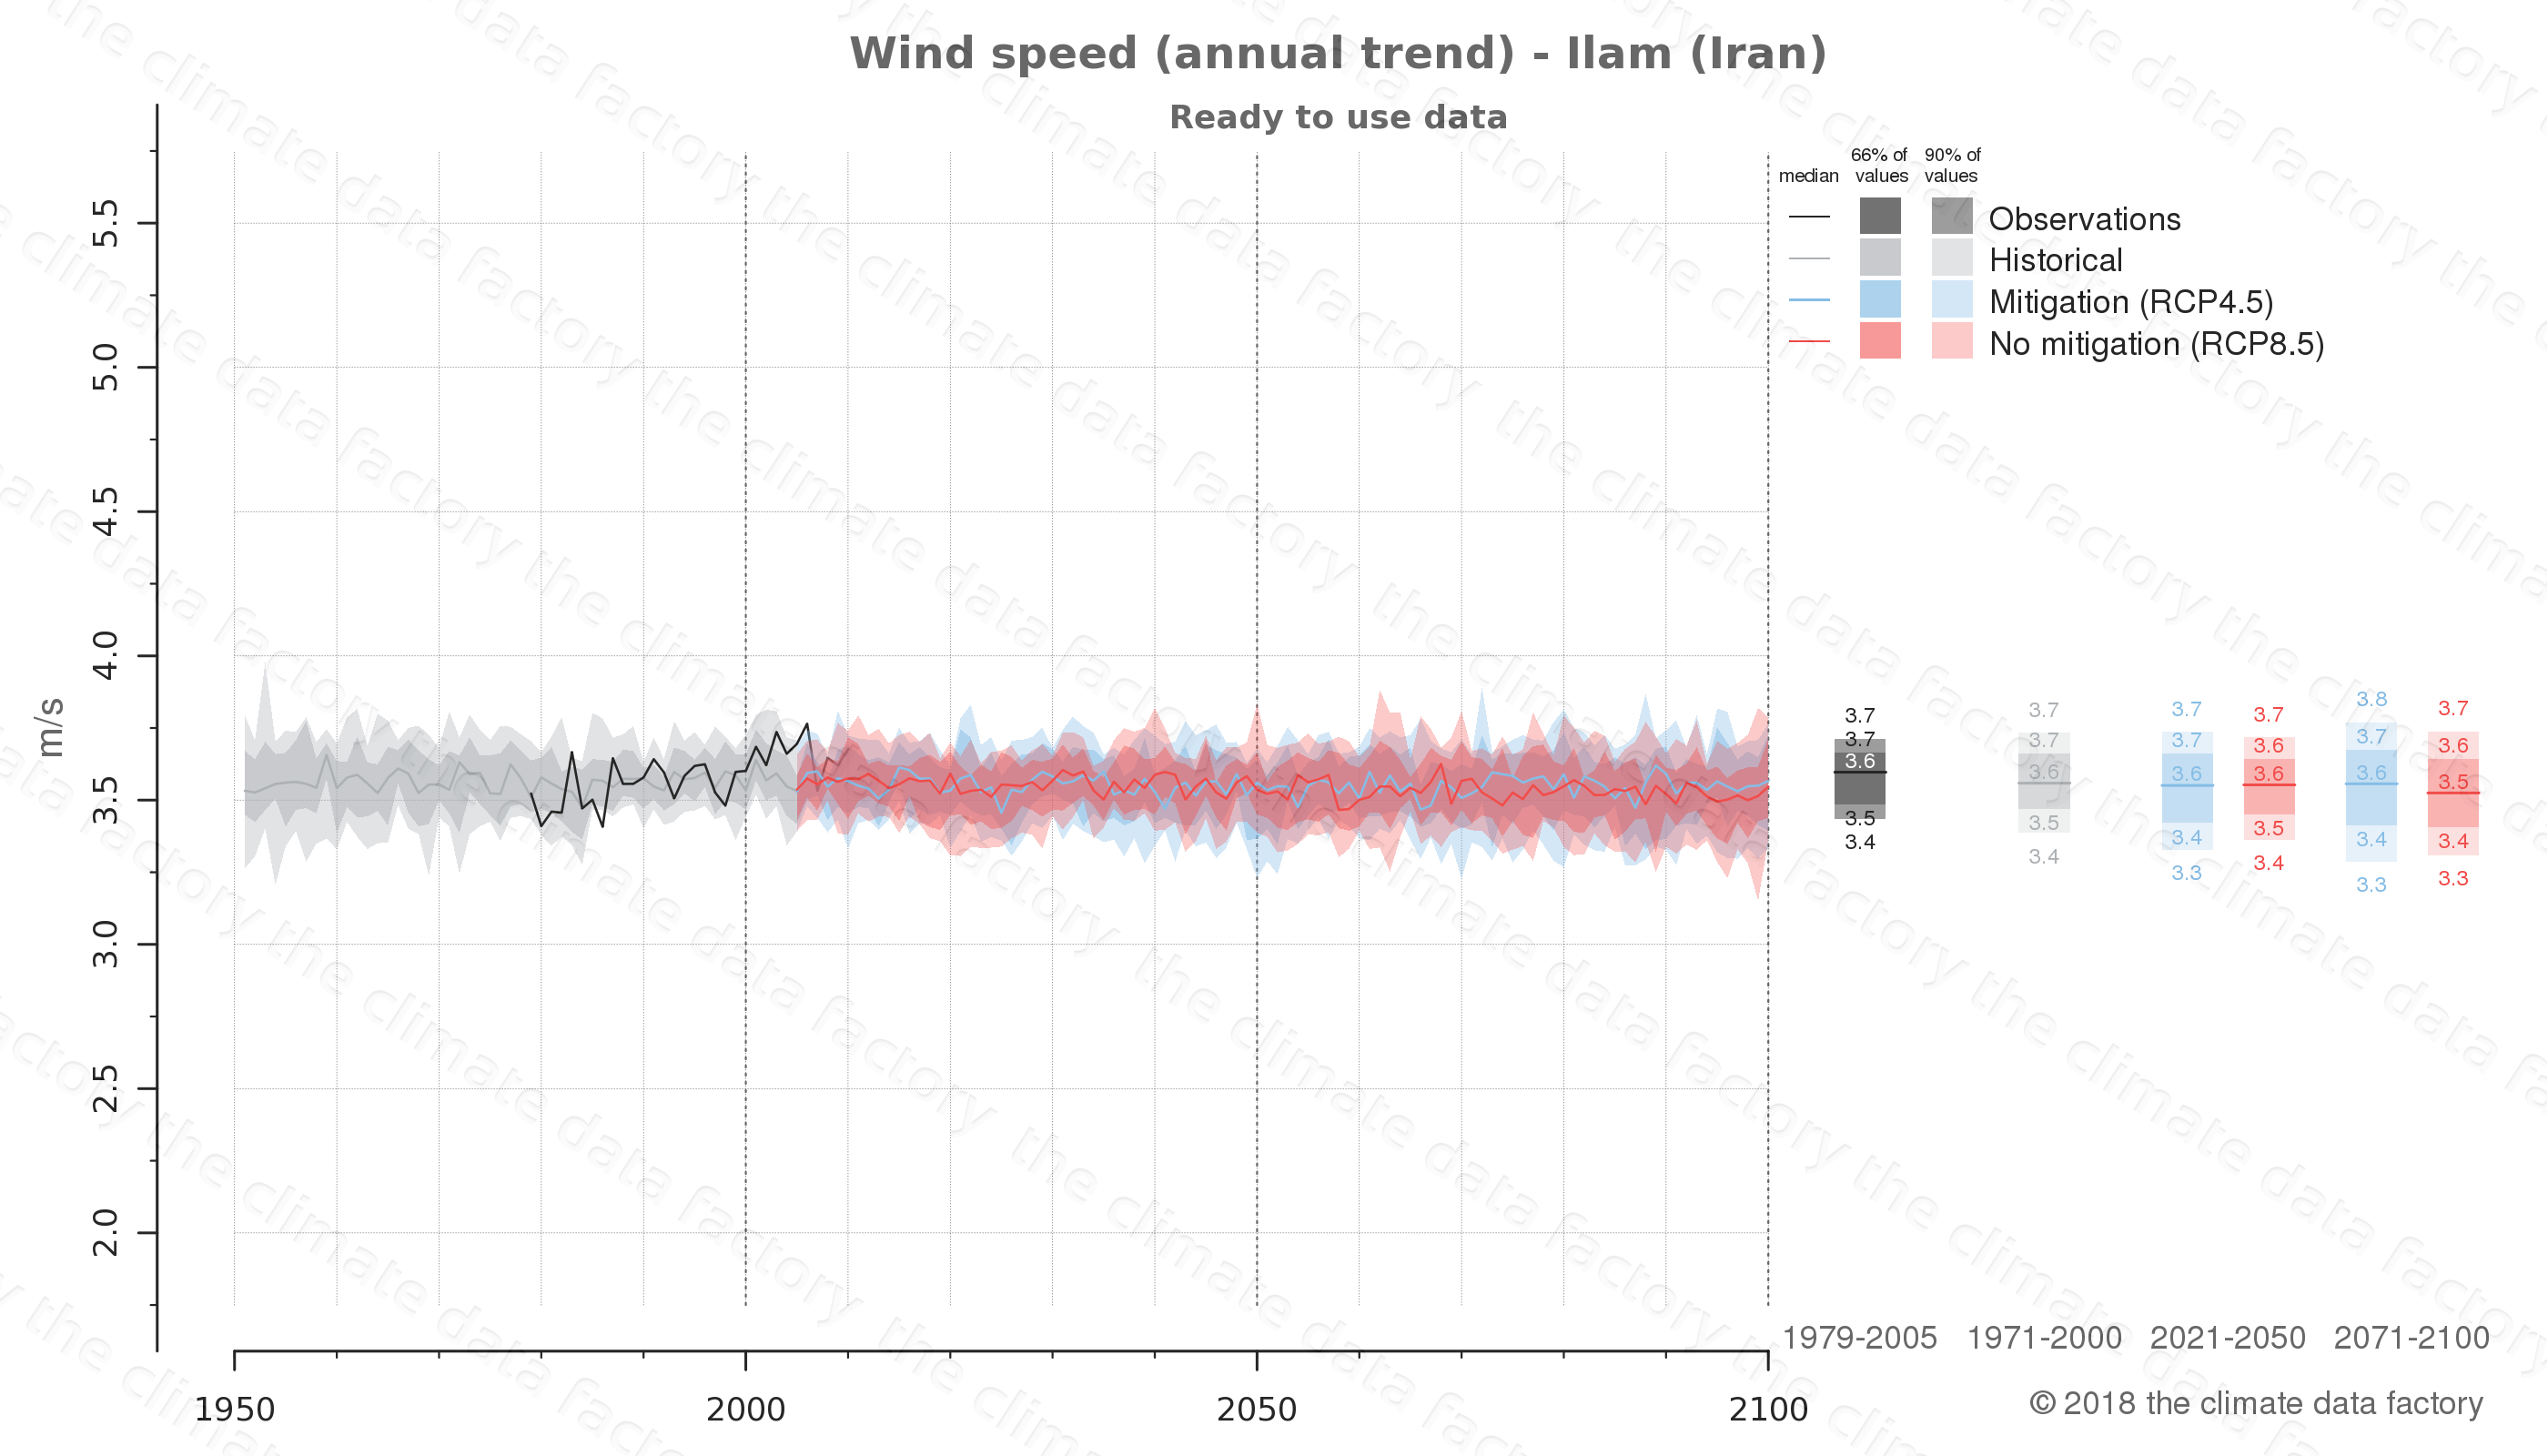 climate change data policy adaptation climate graph city data wind-speed ilam iran